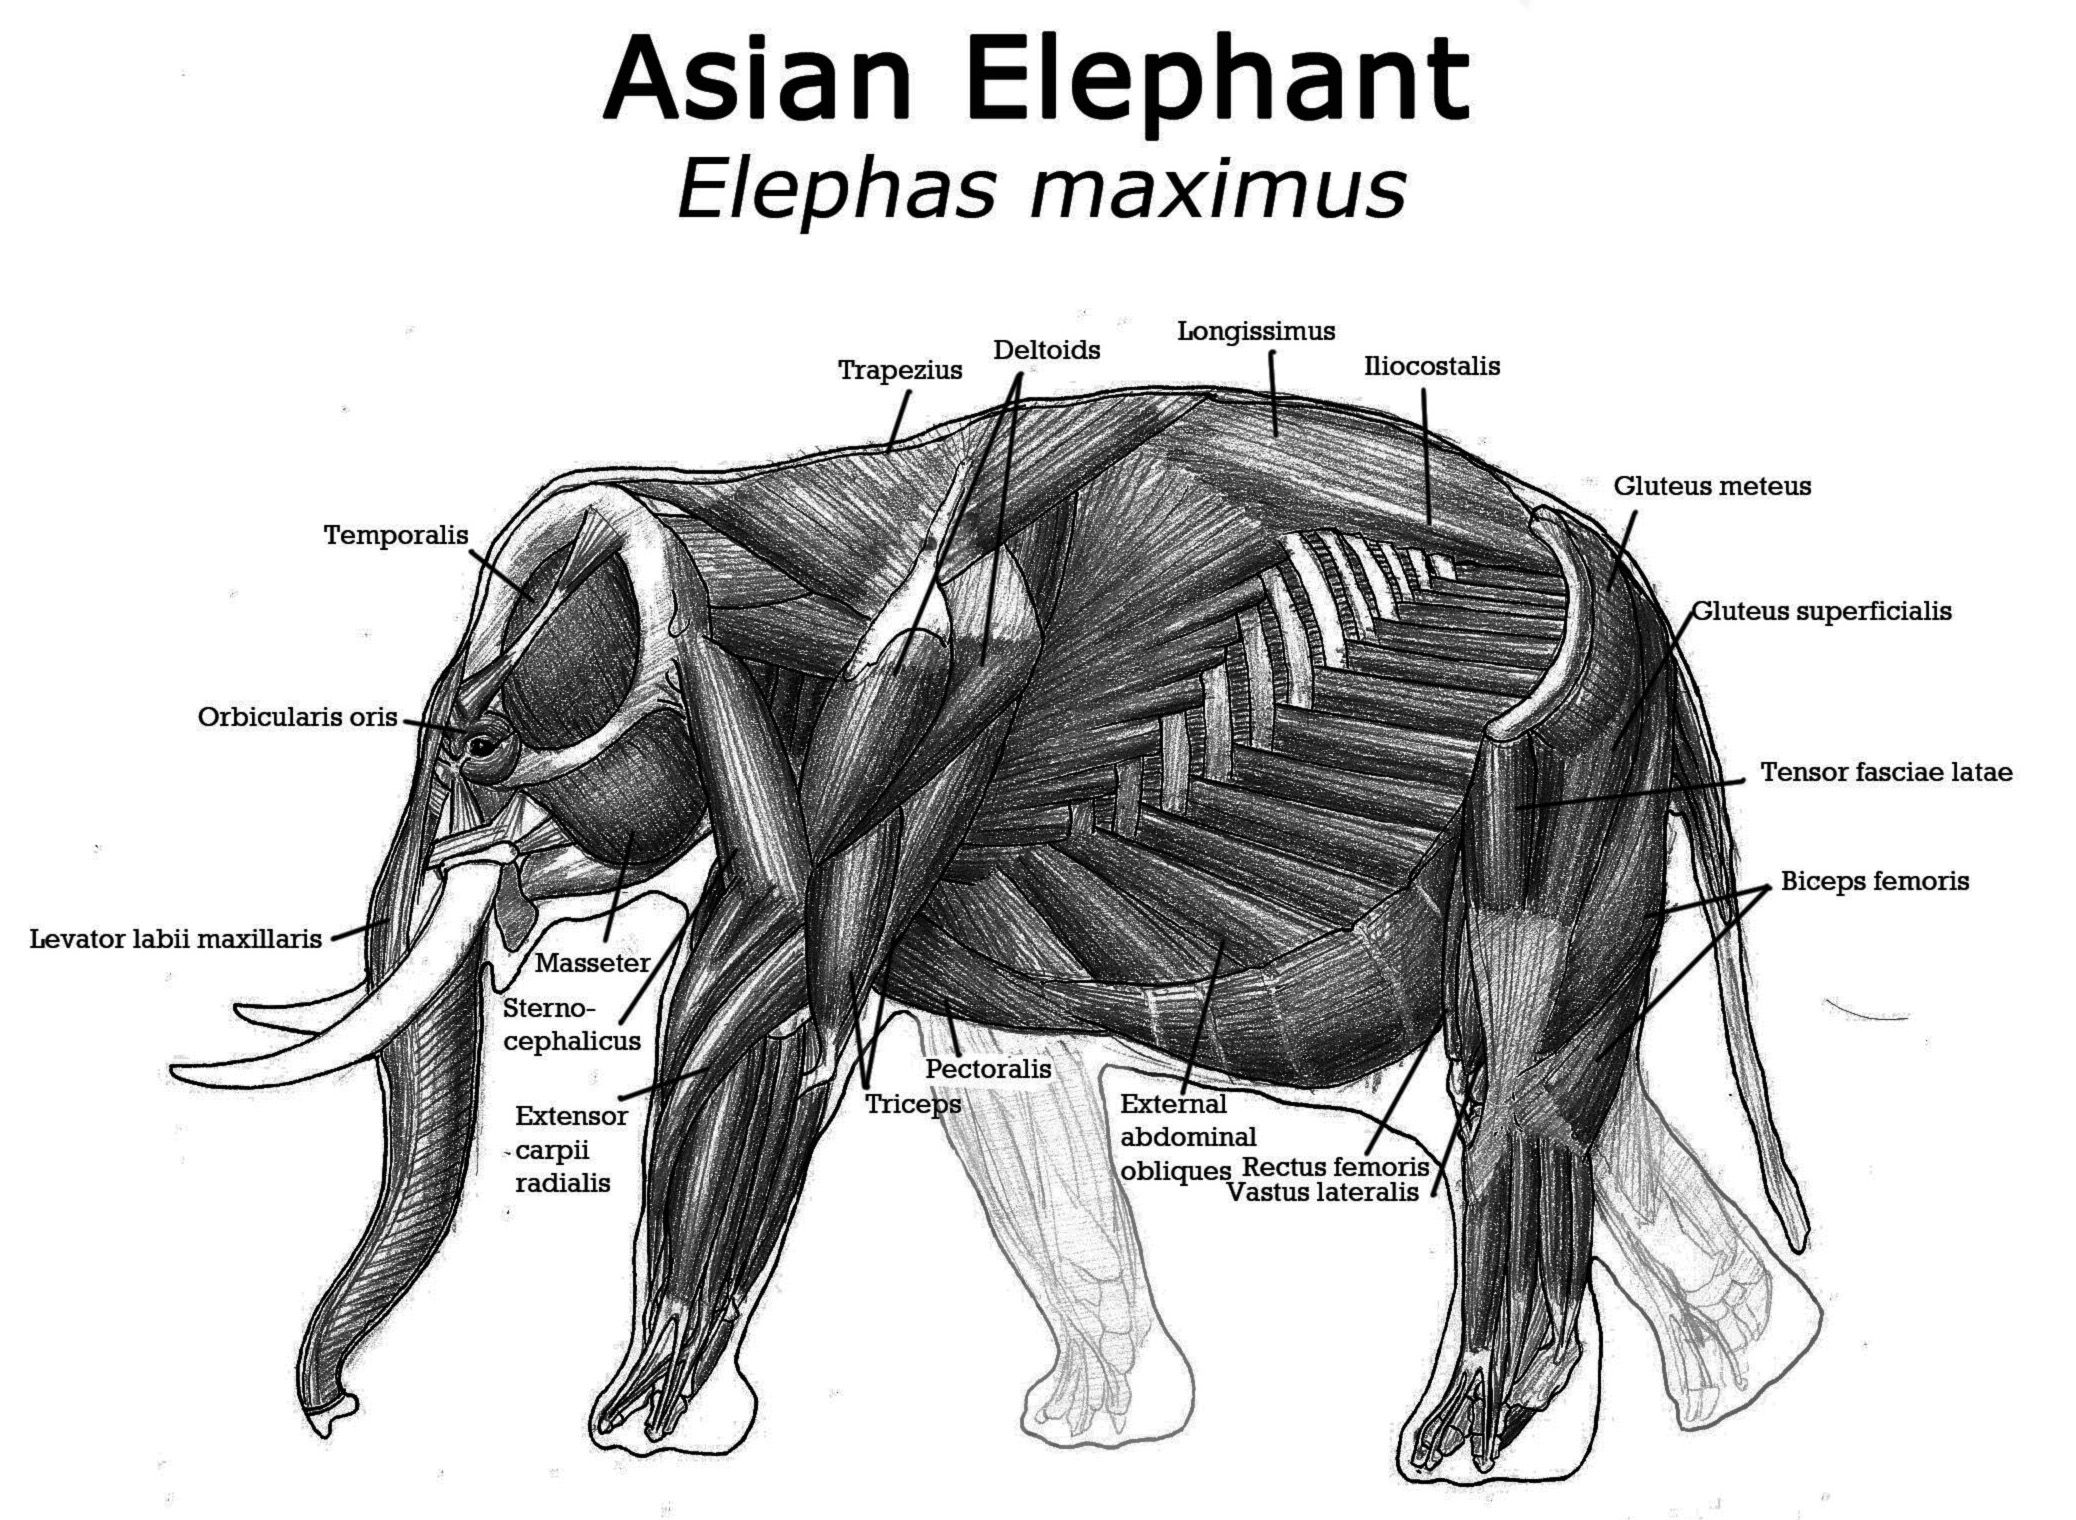 african elephant compared to asian elephant - Google keresés ...